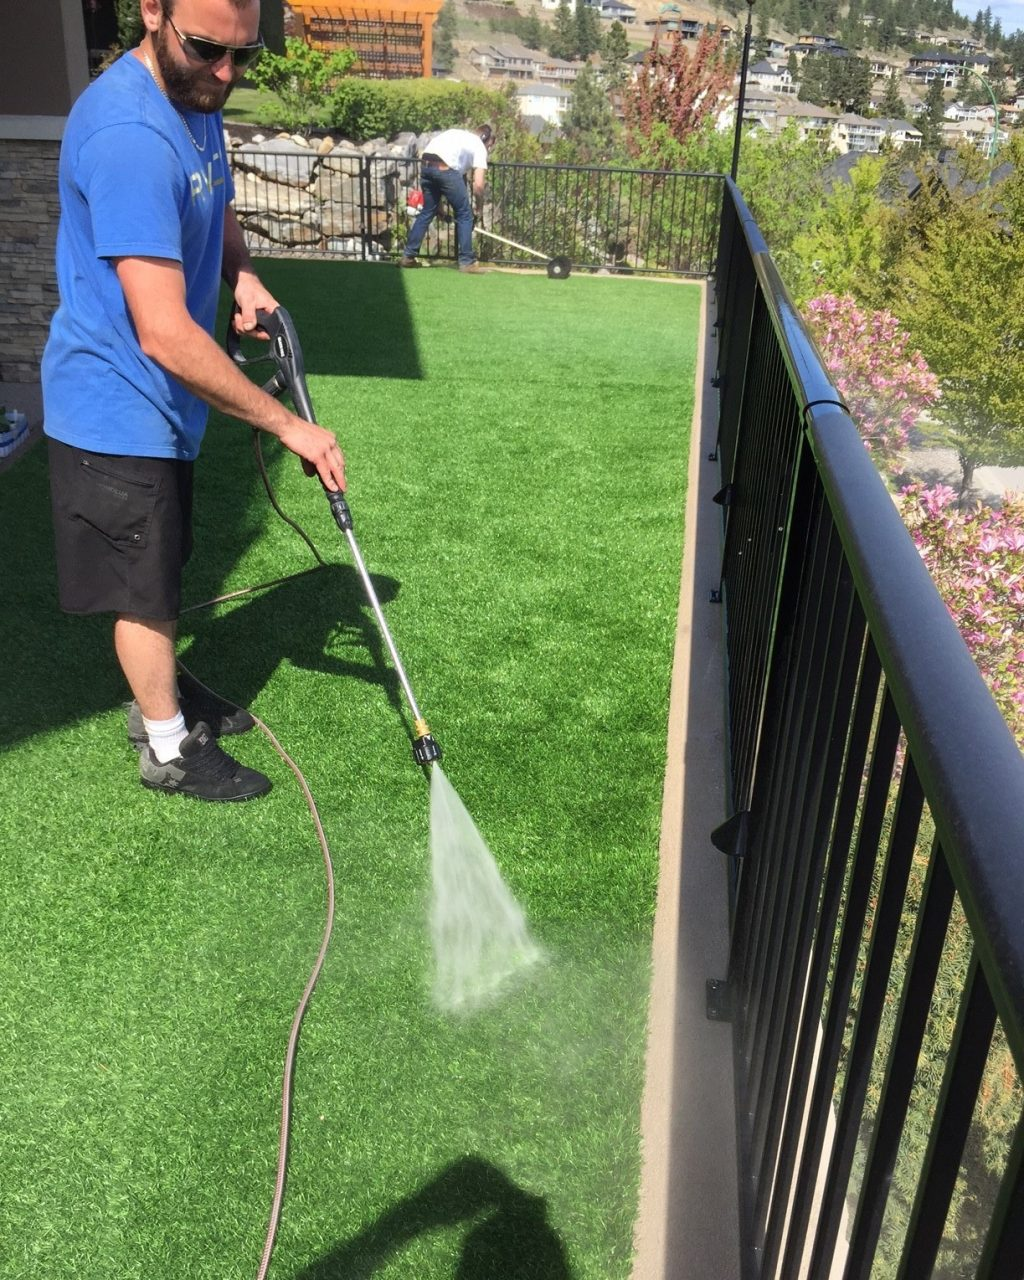 Read more on Best turf care and options for your artificial grass